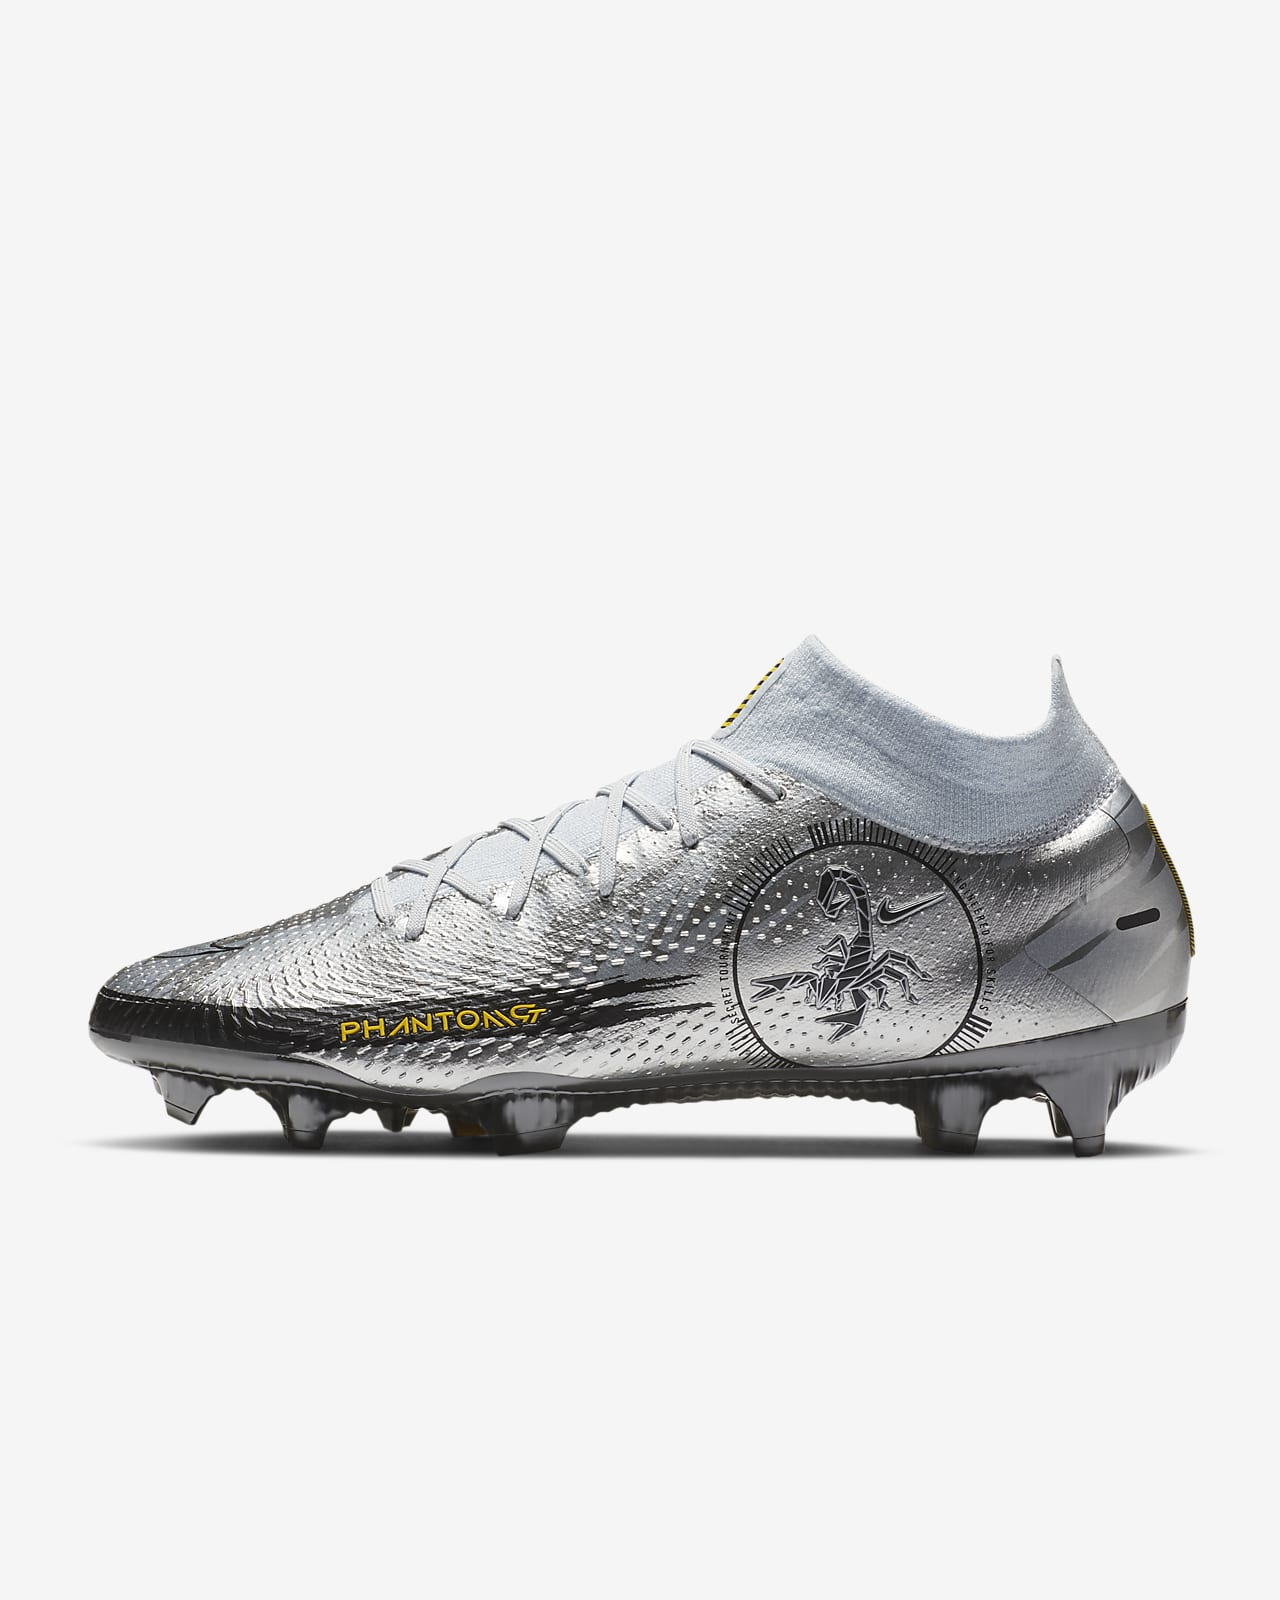 Nike Phantom Scorpion Elite Dynamic Fit FG Firm-Ground Soccer Cleat